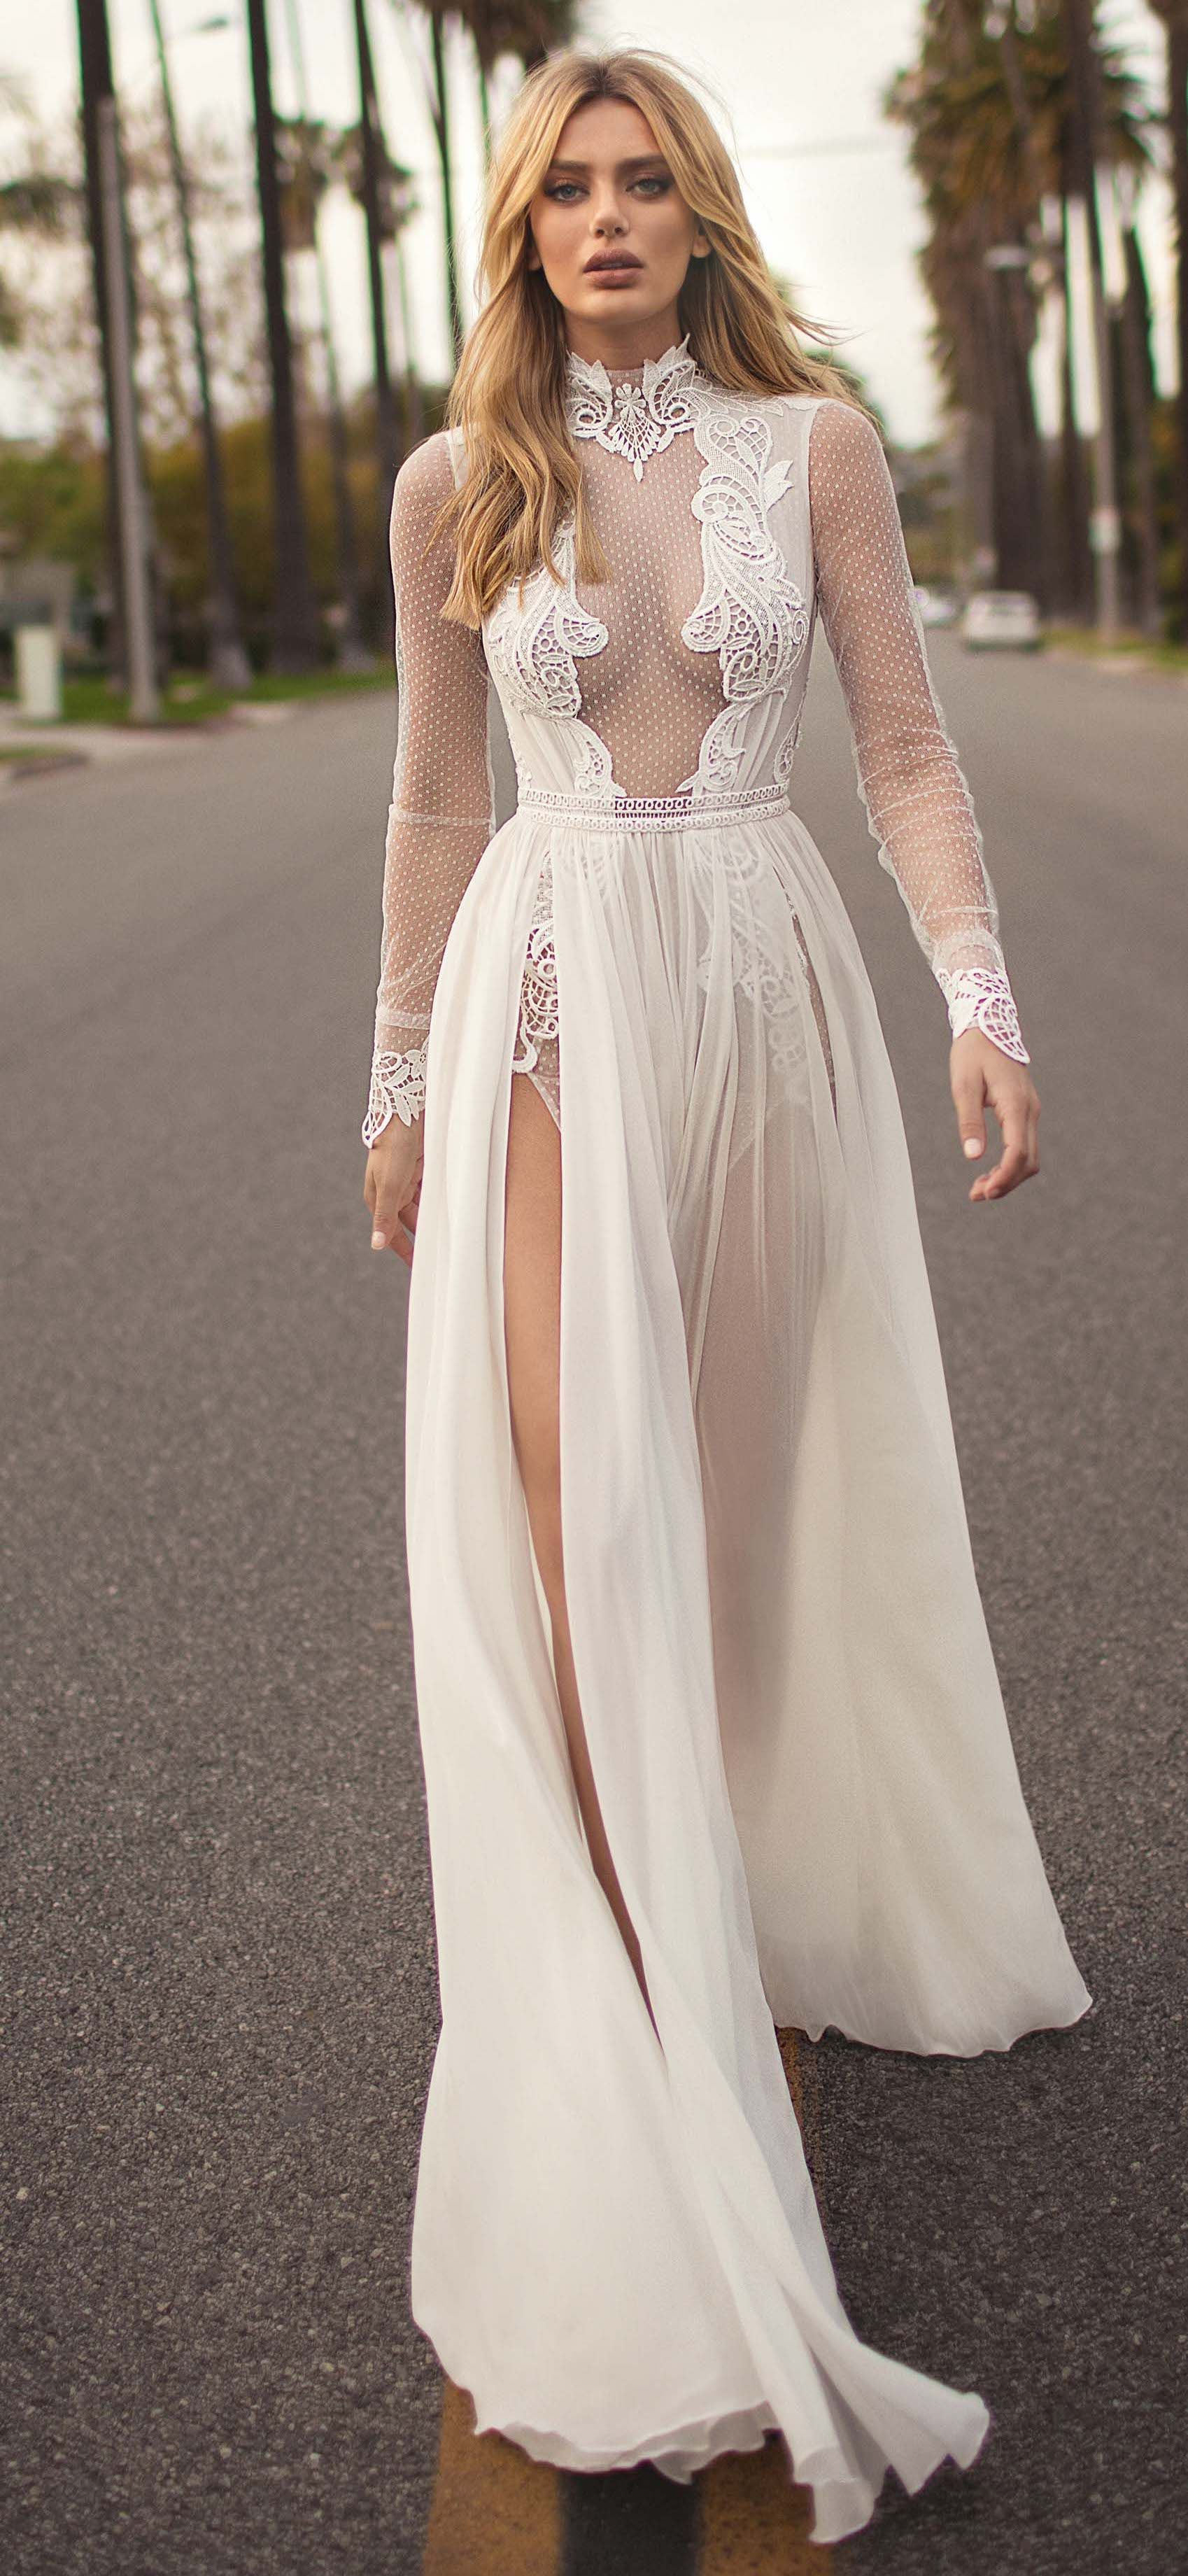 41++ Turtleneck wedding dress with sleeves ideas in 2021